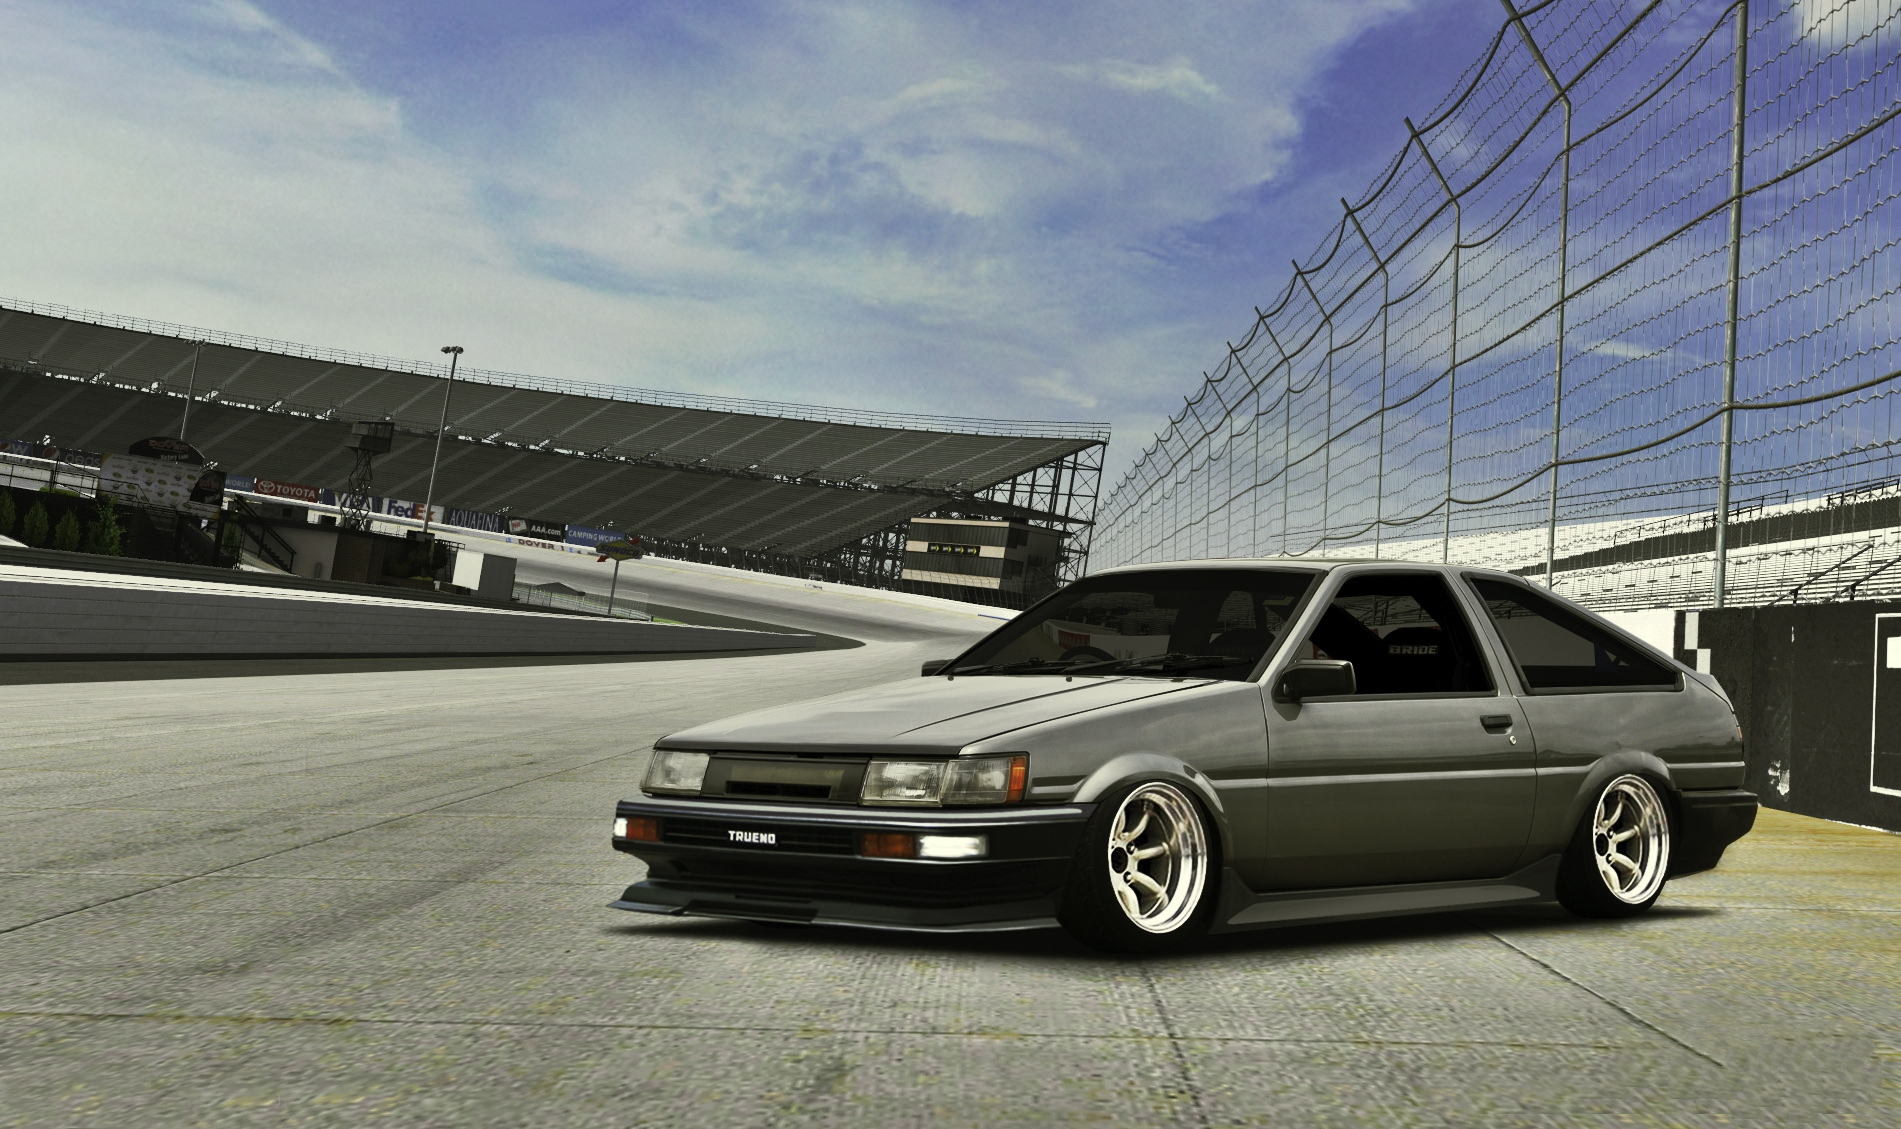 Toyota Cars Wallpapers Free Download Hd Toyota Corolla Ae86 Wallpaper Pixelstalk Net